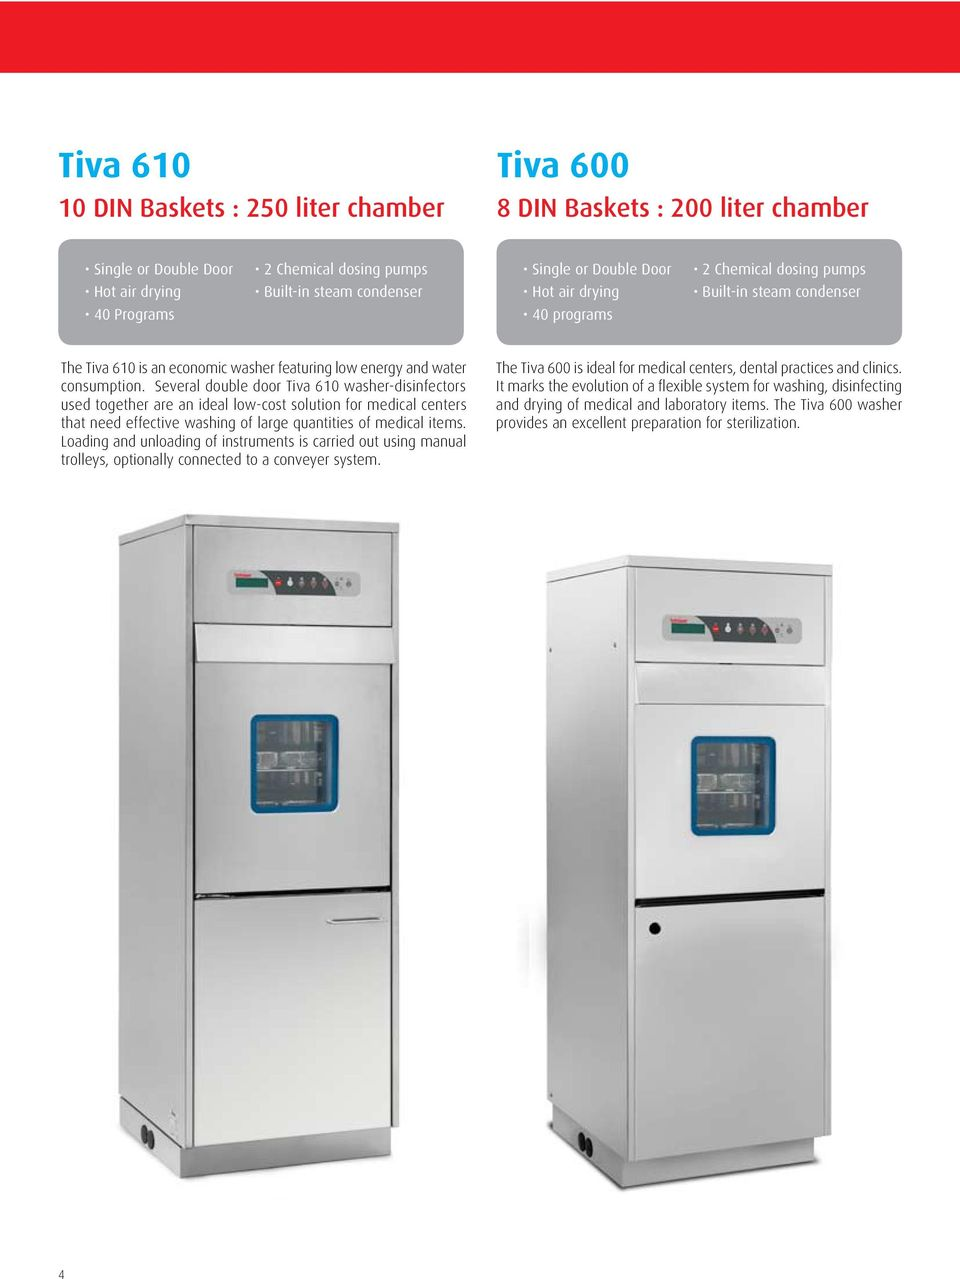 Several double door Tiva 610 washer-disinfectors used together are an ideal low-cost solution for medical centers that need effective washing of large quantities of medical items.